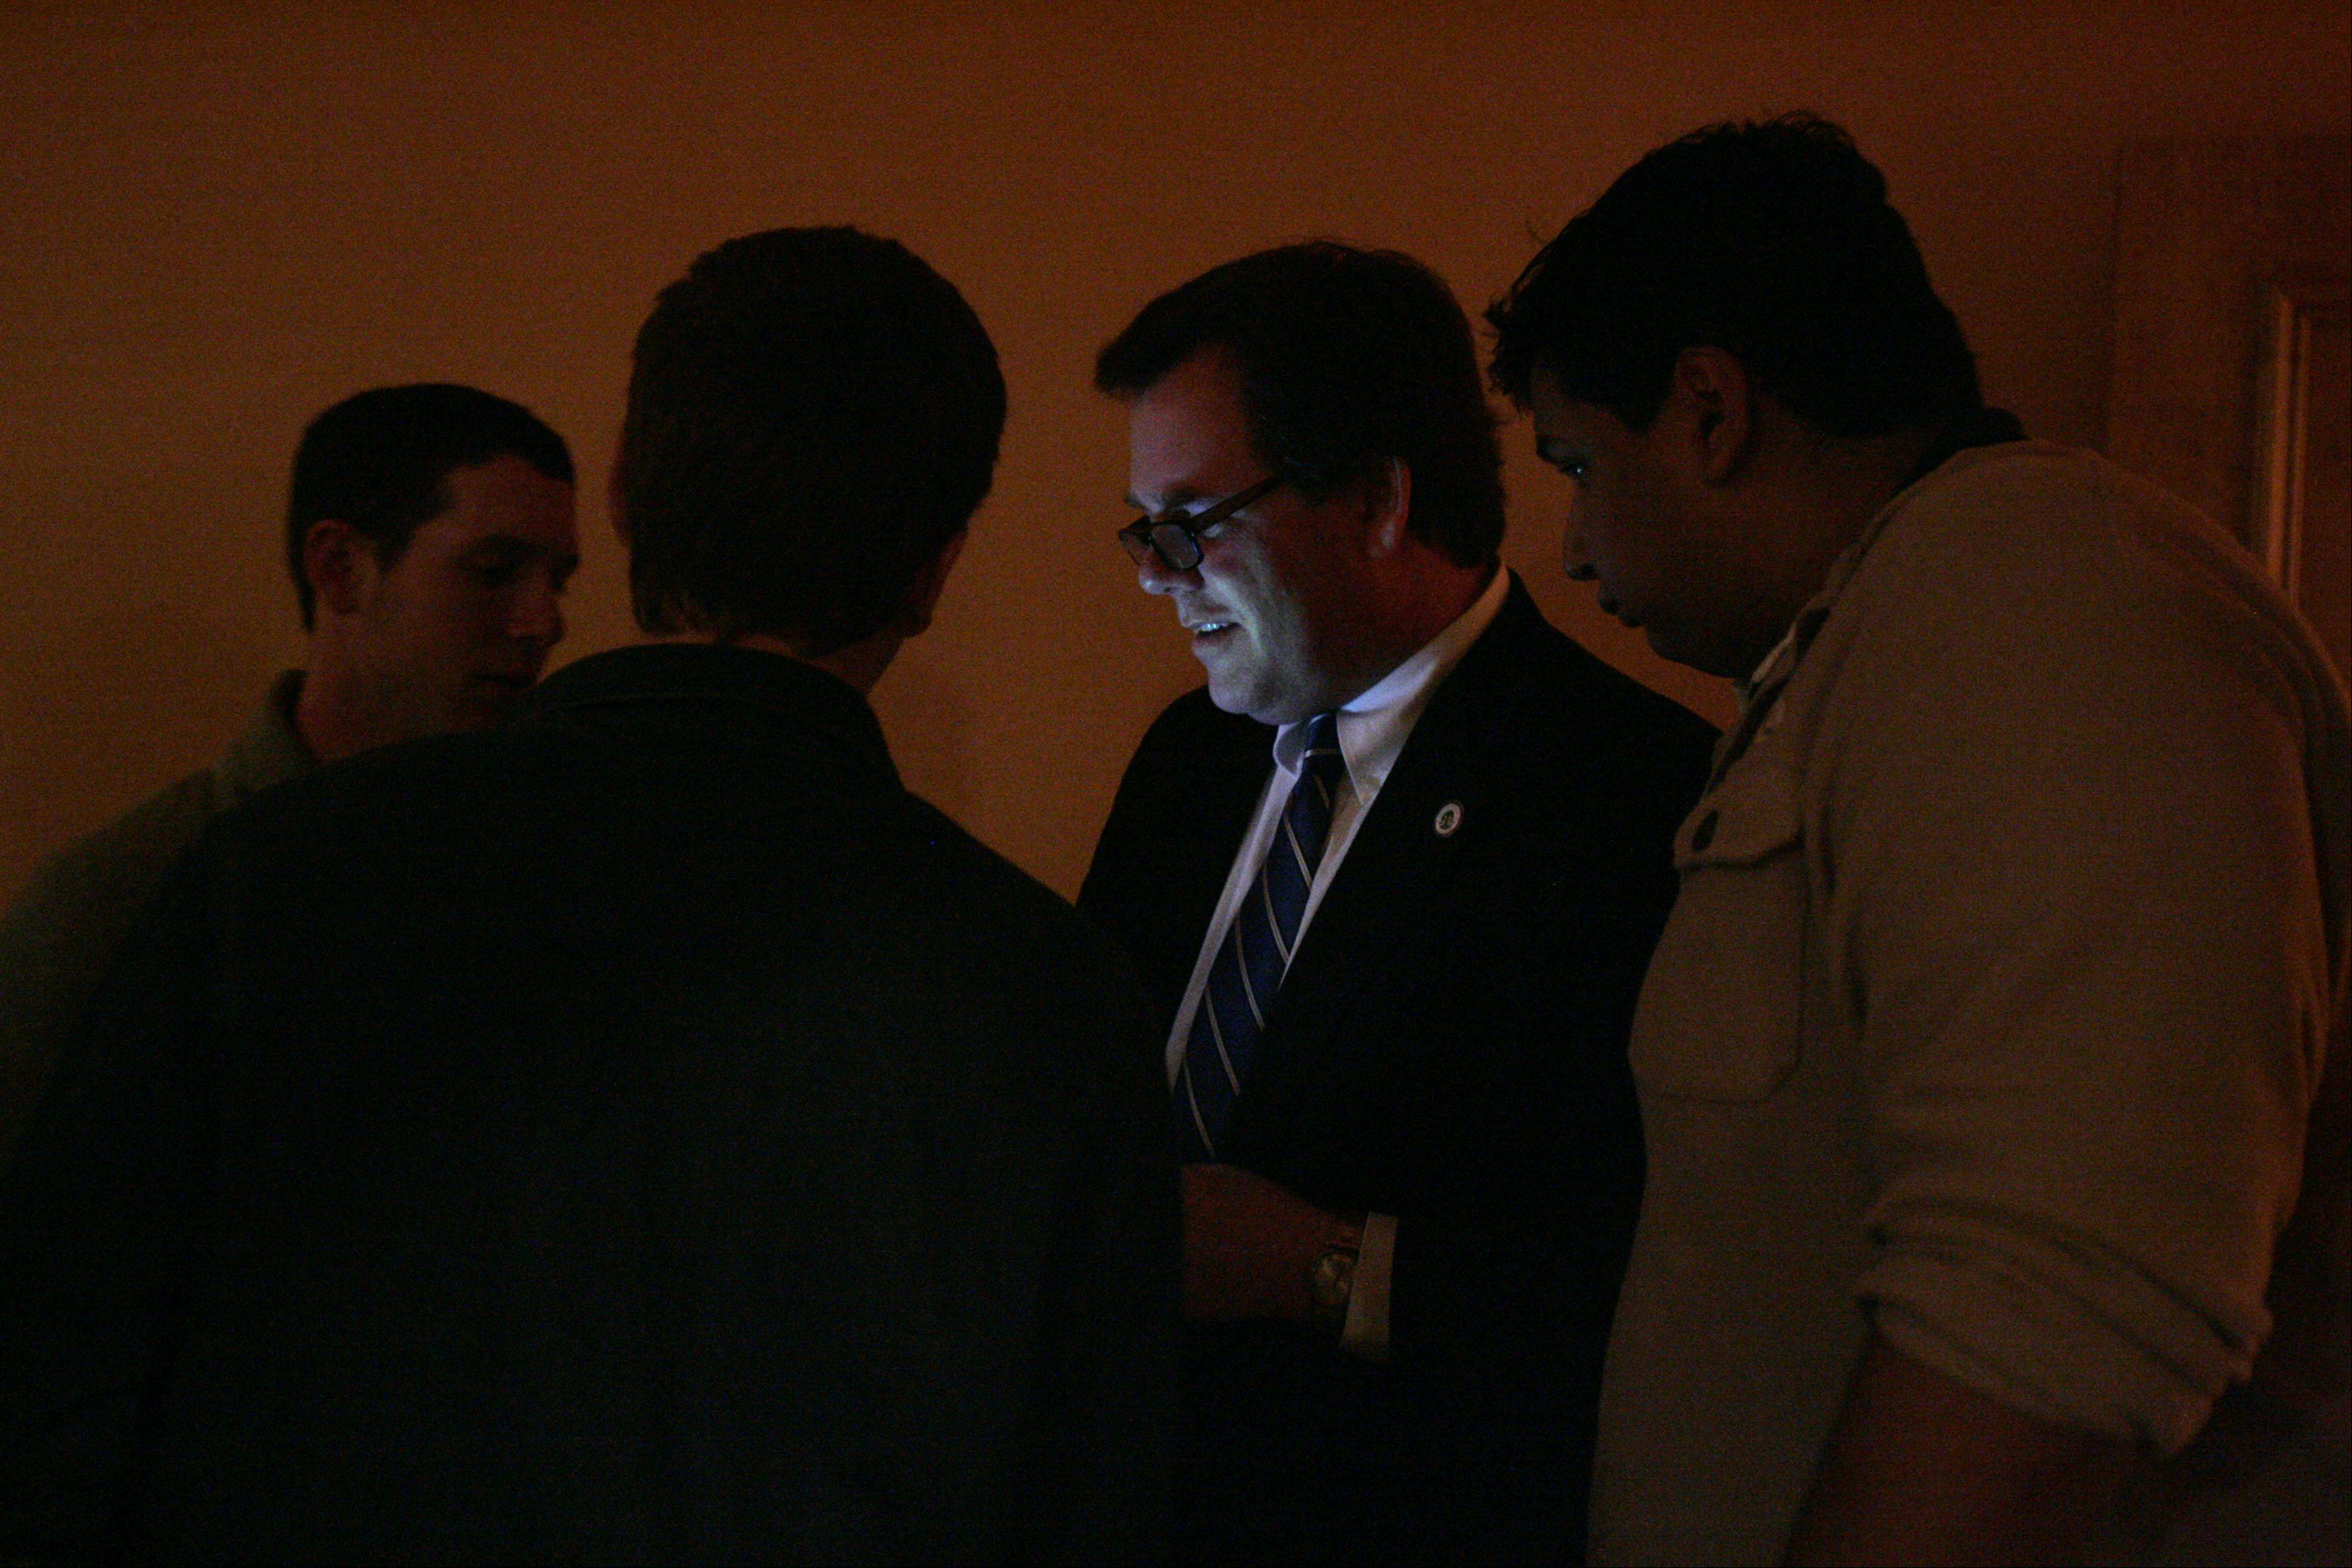 Geneva mayor Kevin Burns is lit by his cell phone as he checks results in his re-election bid at his office in Geneva on election night. I like the way the rest of the men in the photo are in the shadows. It's a little artistic, but I think it works. That is why I chose to use this photo in the Perspective column feature.